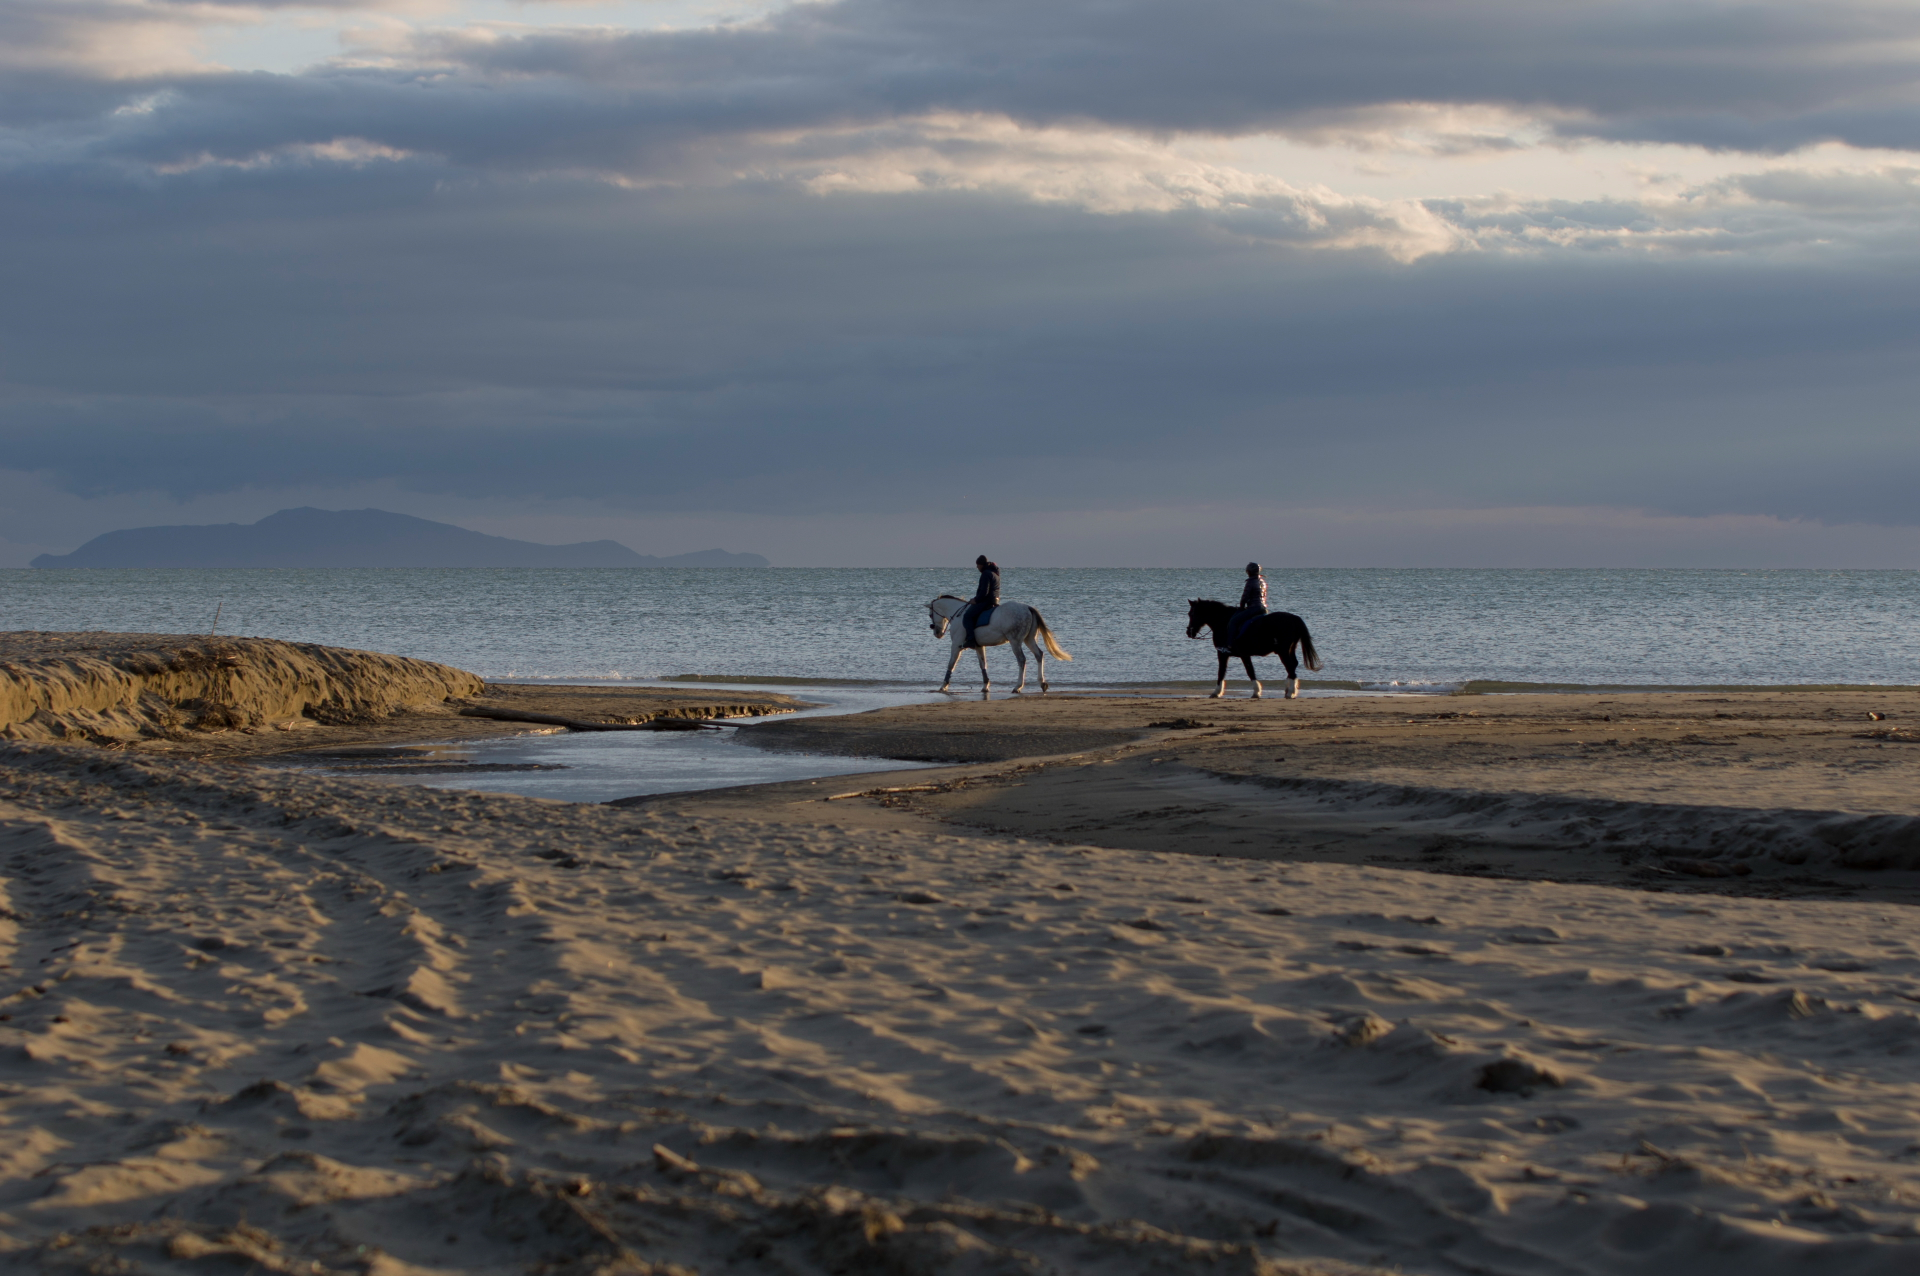 Riding on the Tuscan beaches...